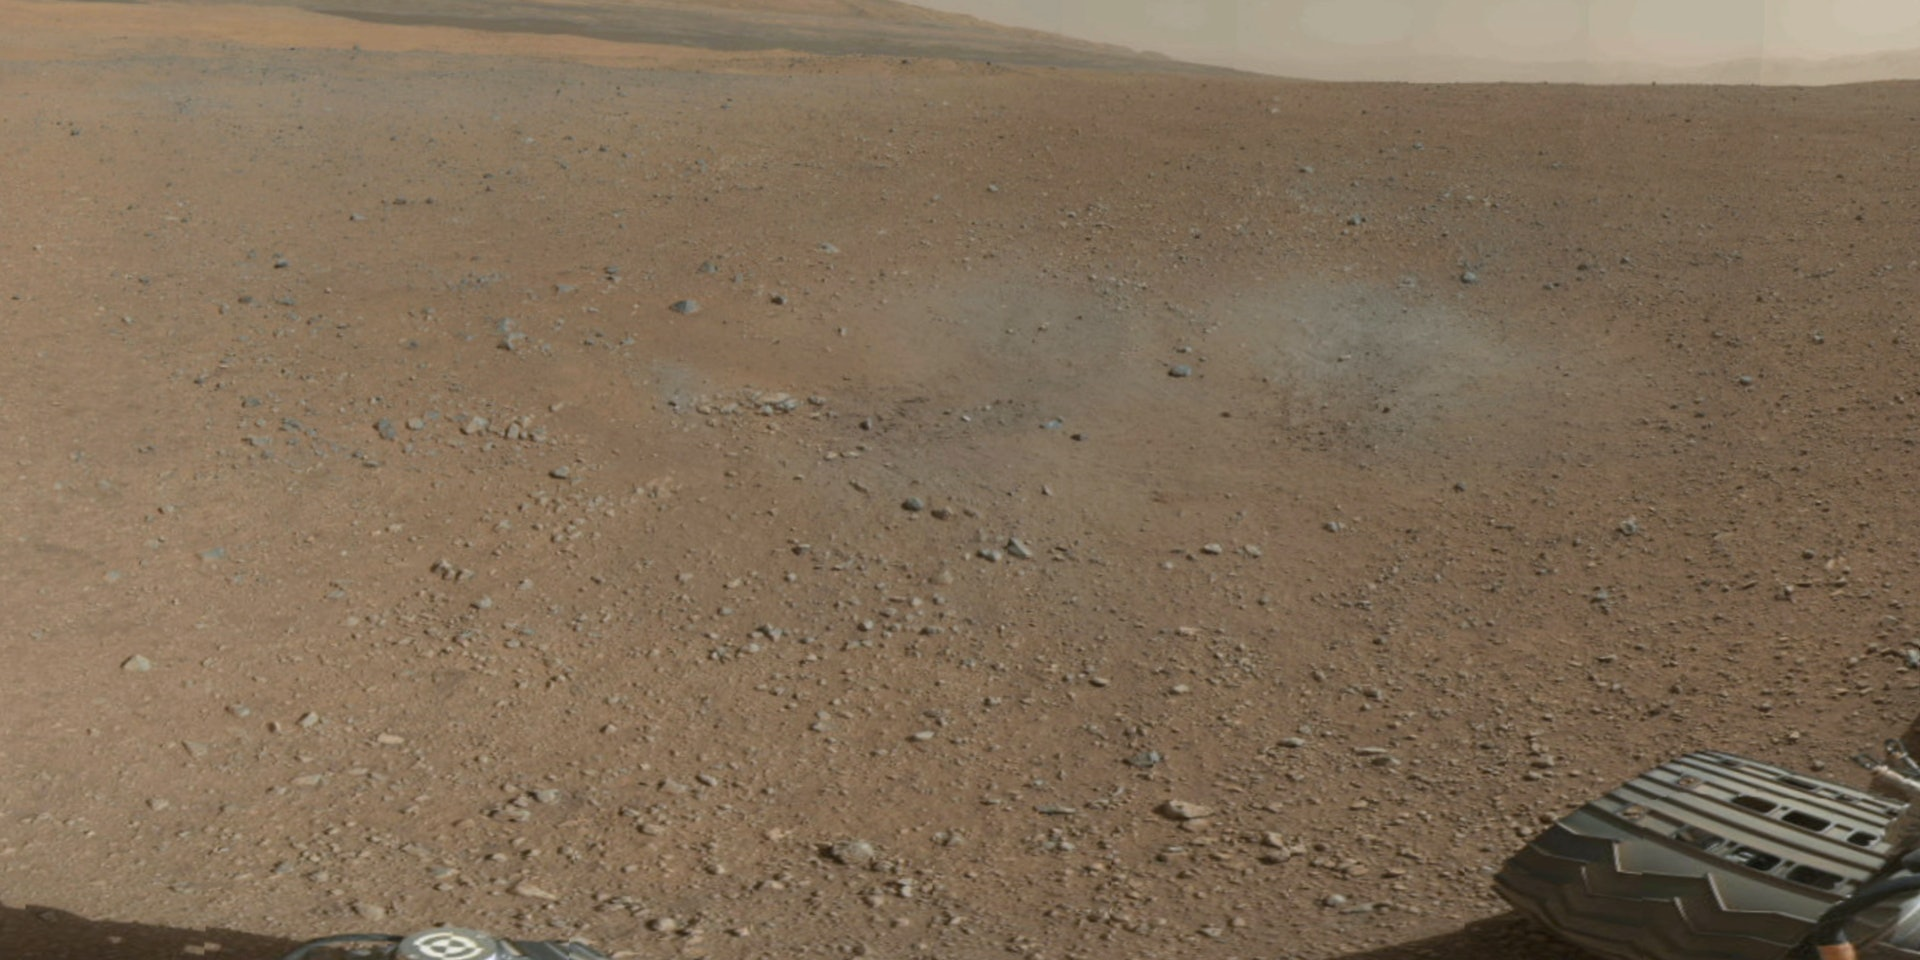 The Red Planet is ready for its close-up.